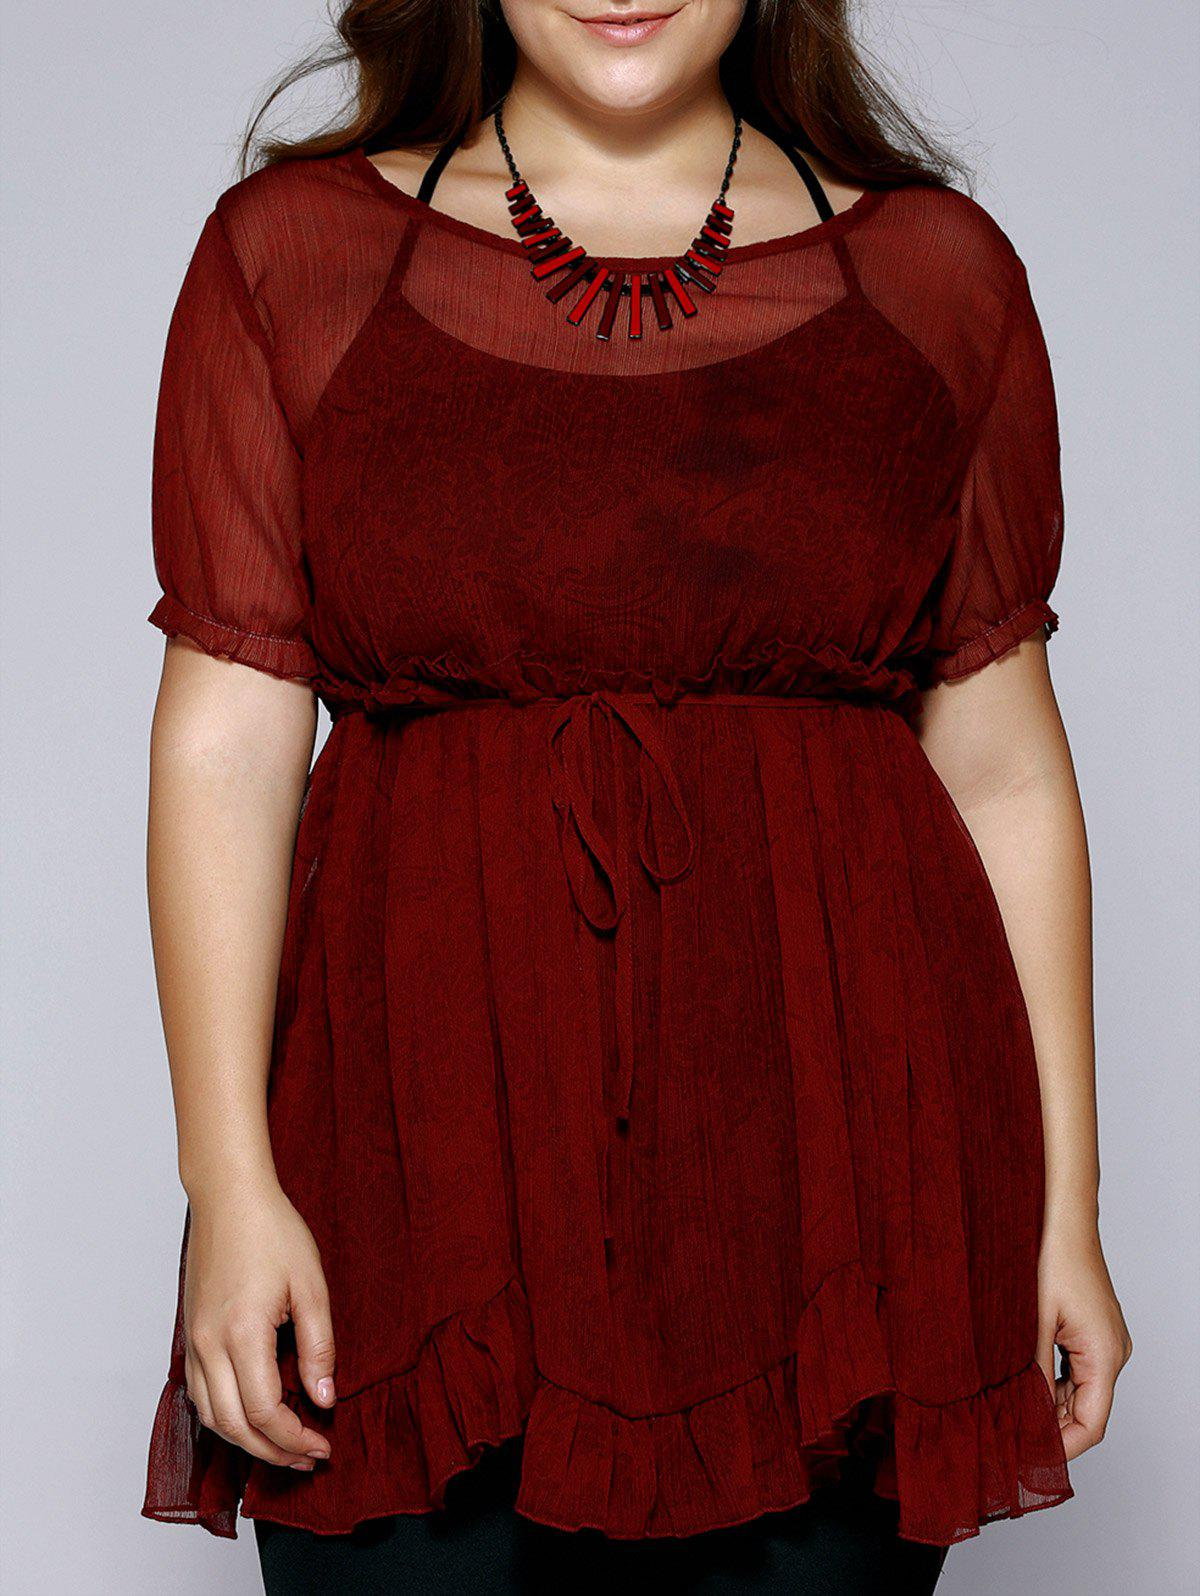 Oversized Ladylike Tank Top + Jacquard Flounced Blouse - CLARET 4XL